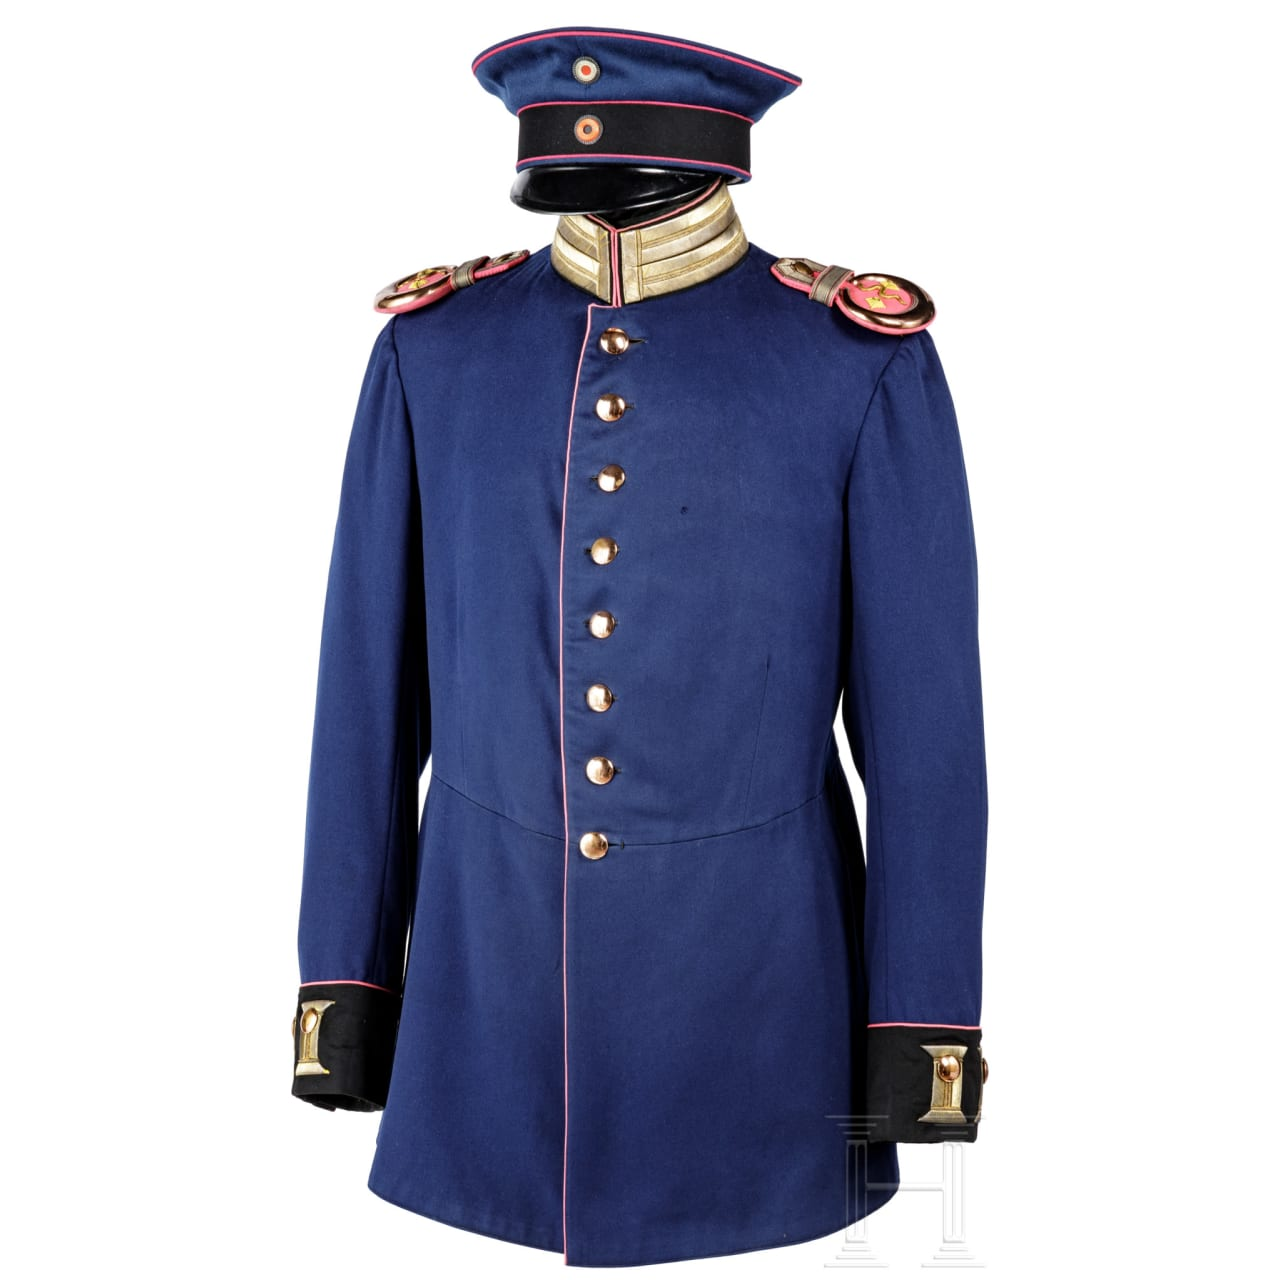 A cap and a parade tunic for an staff veterinarian